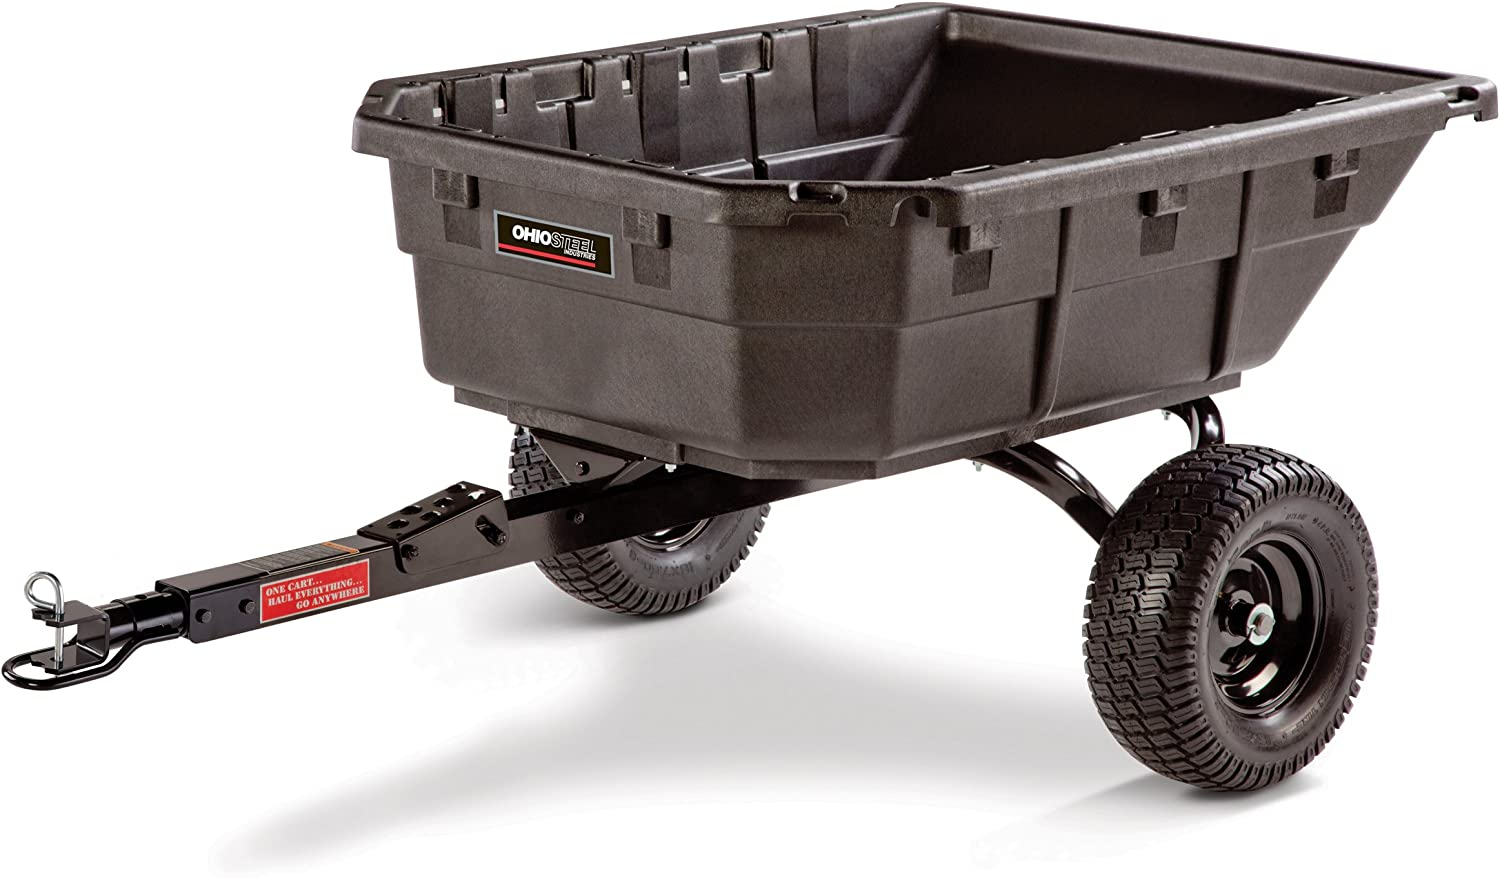 Best dump cart for lawn tractor: Ohio Steel 4048PHYB Pro Grade Hybrid Tractor/ATV Cart